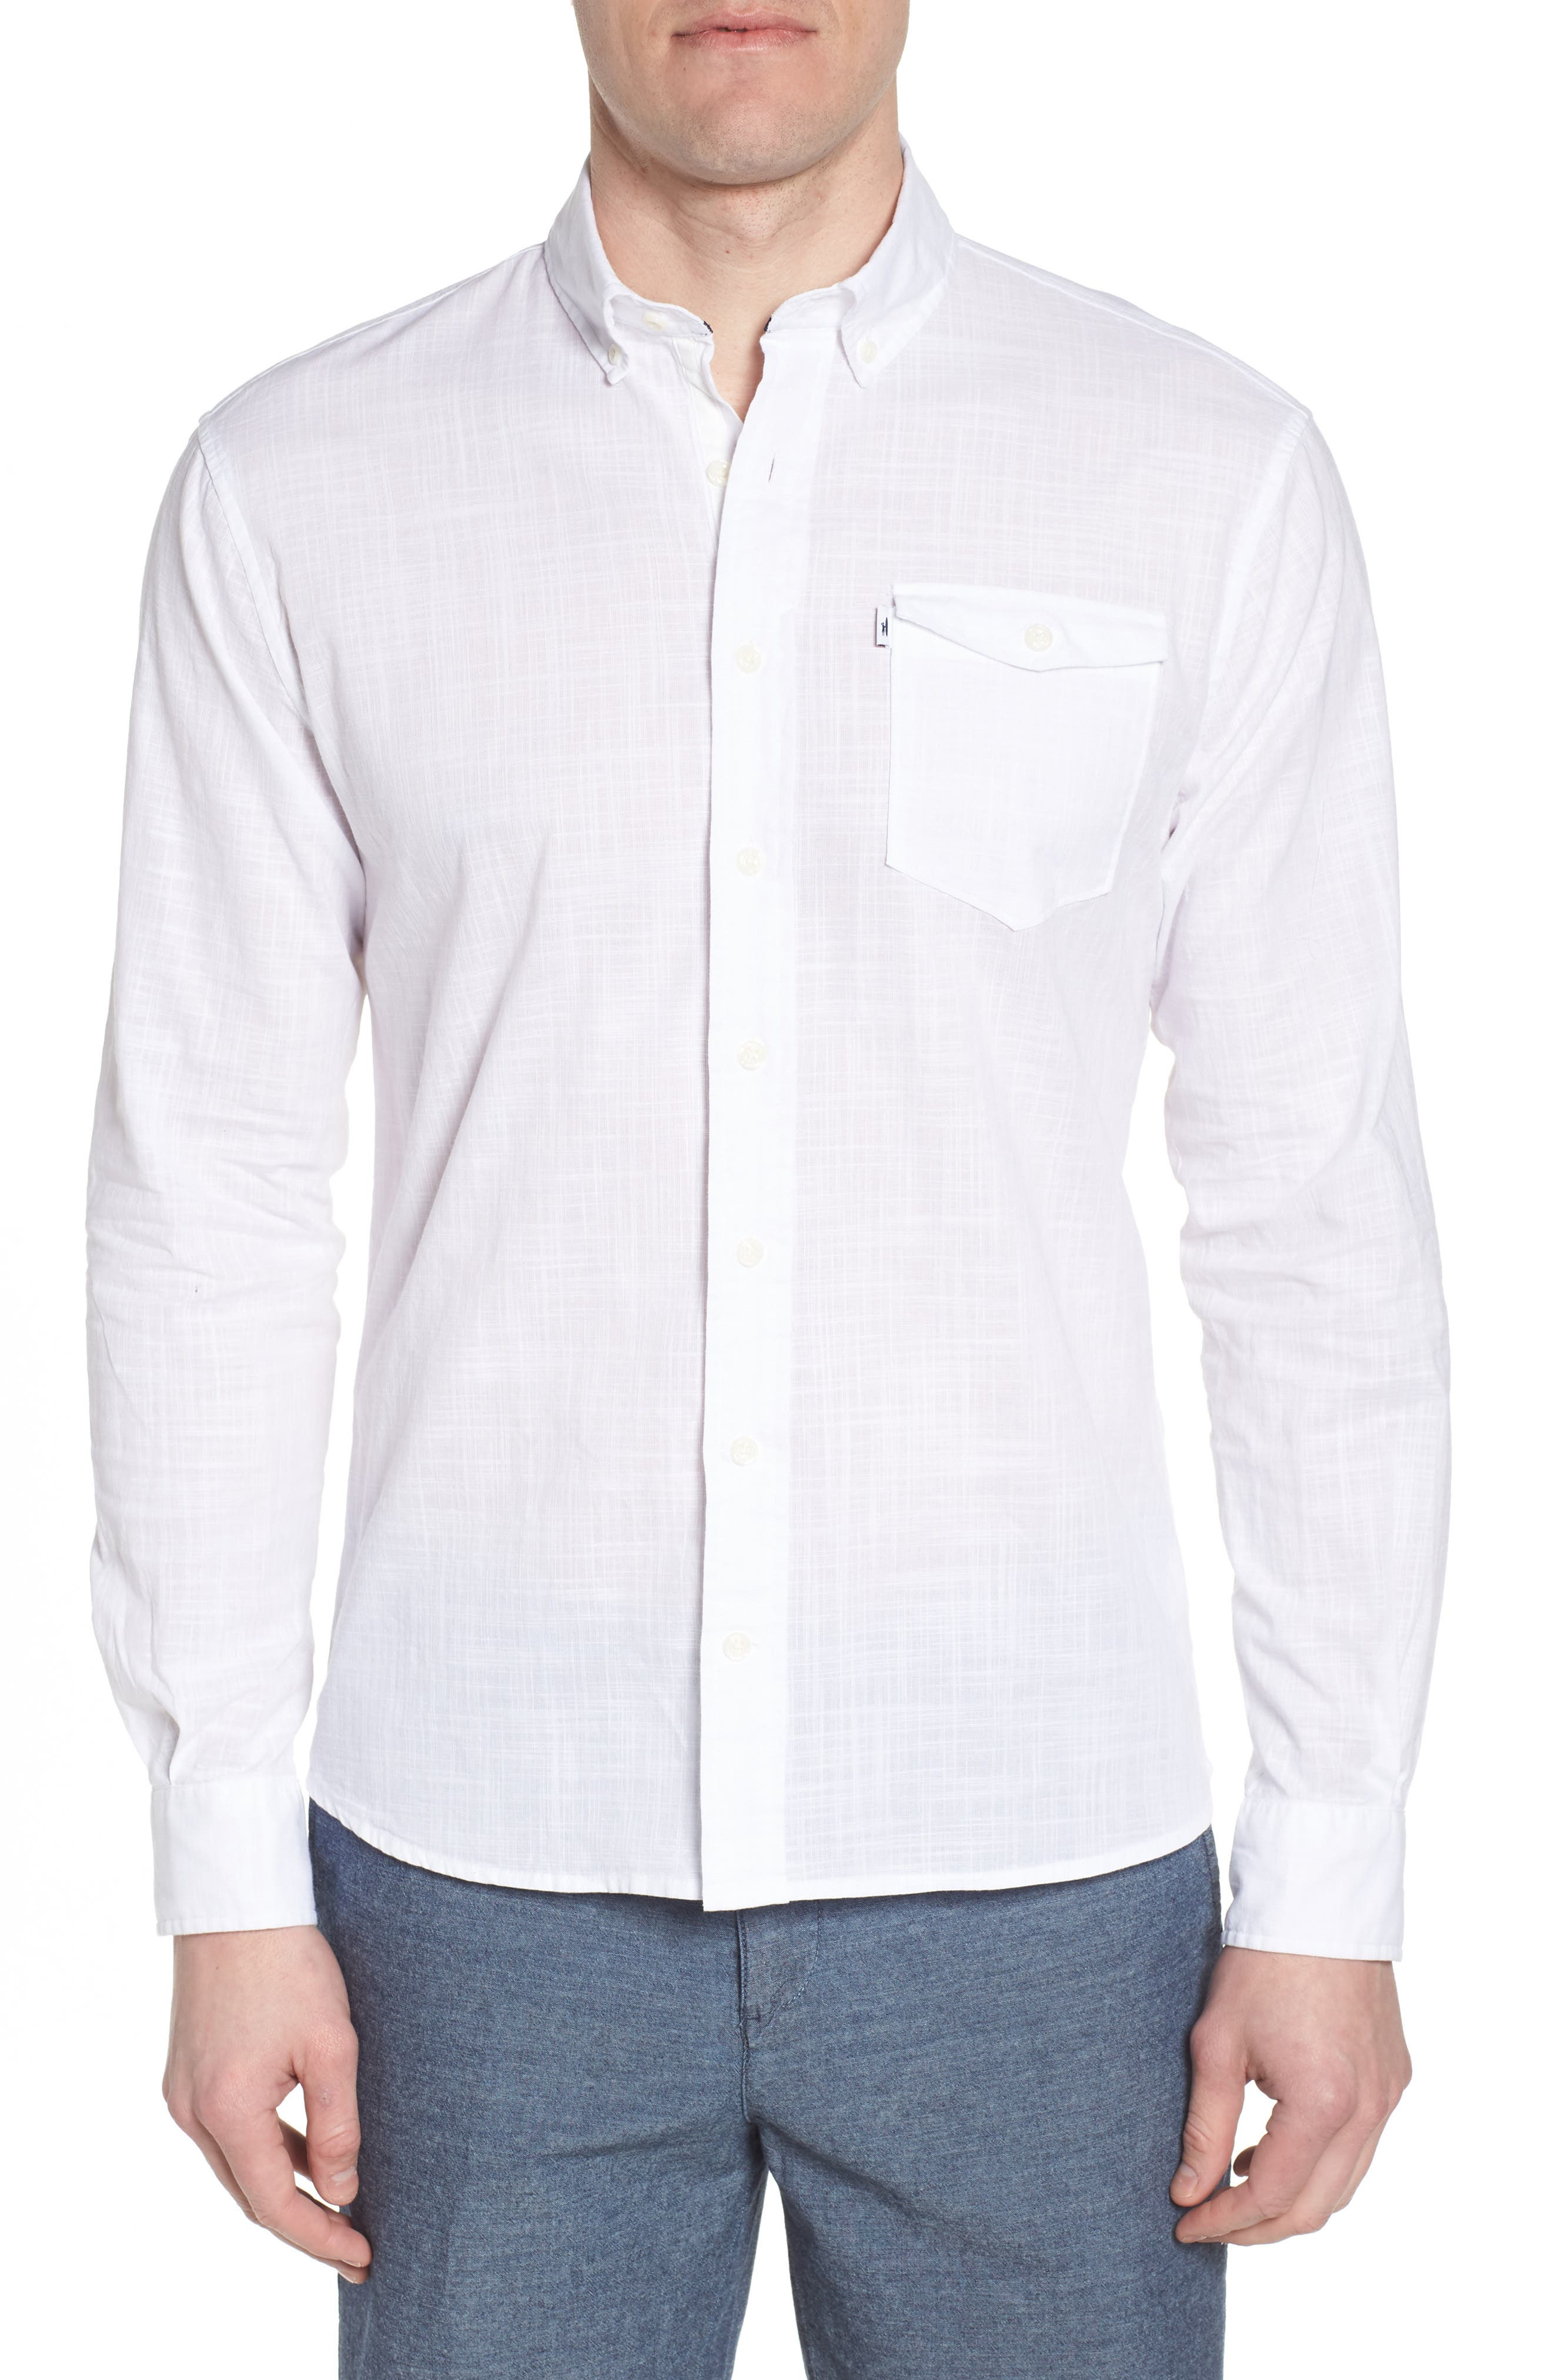 Brodie Regular Fit Sport Shirt,                         Main,                         color, White